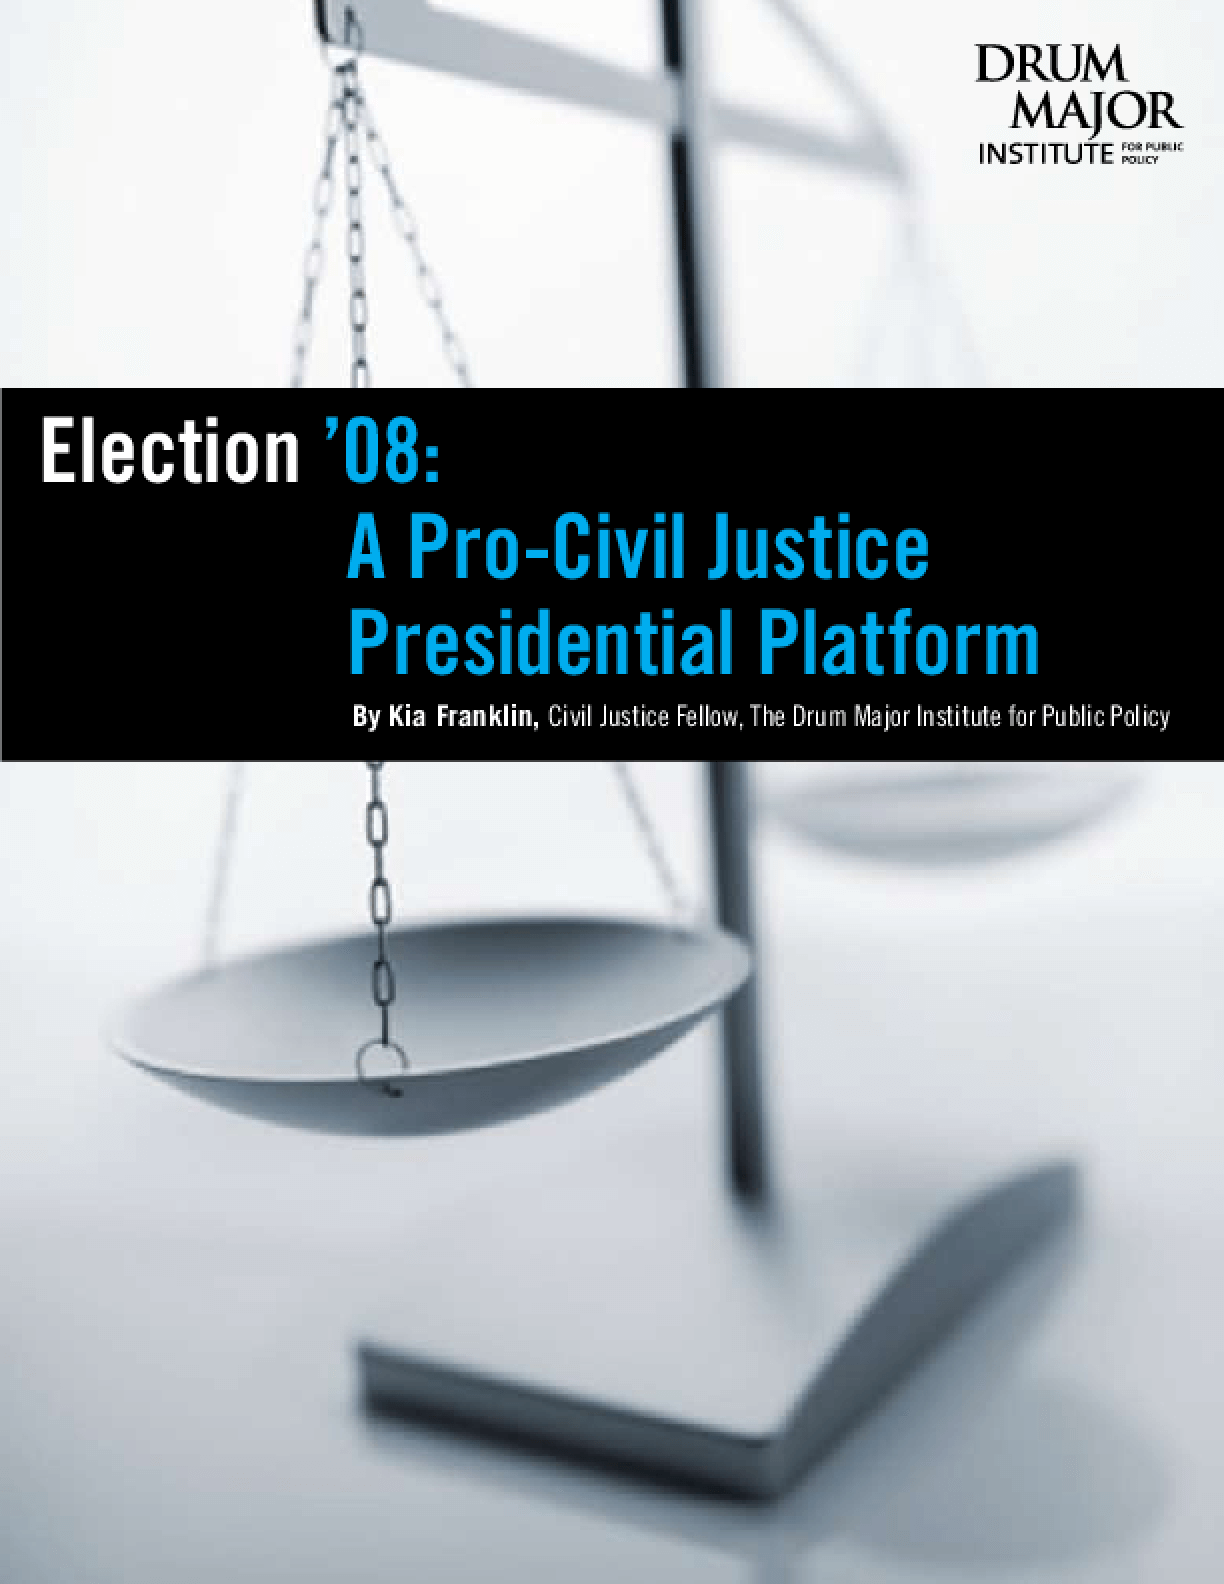 Election '08: A Pro-Civil Justice Presidential Platform